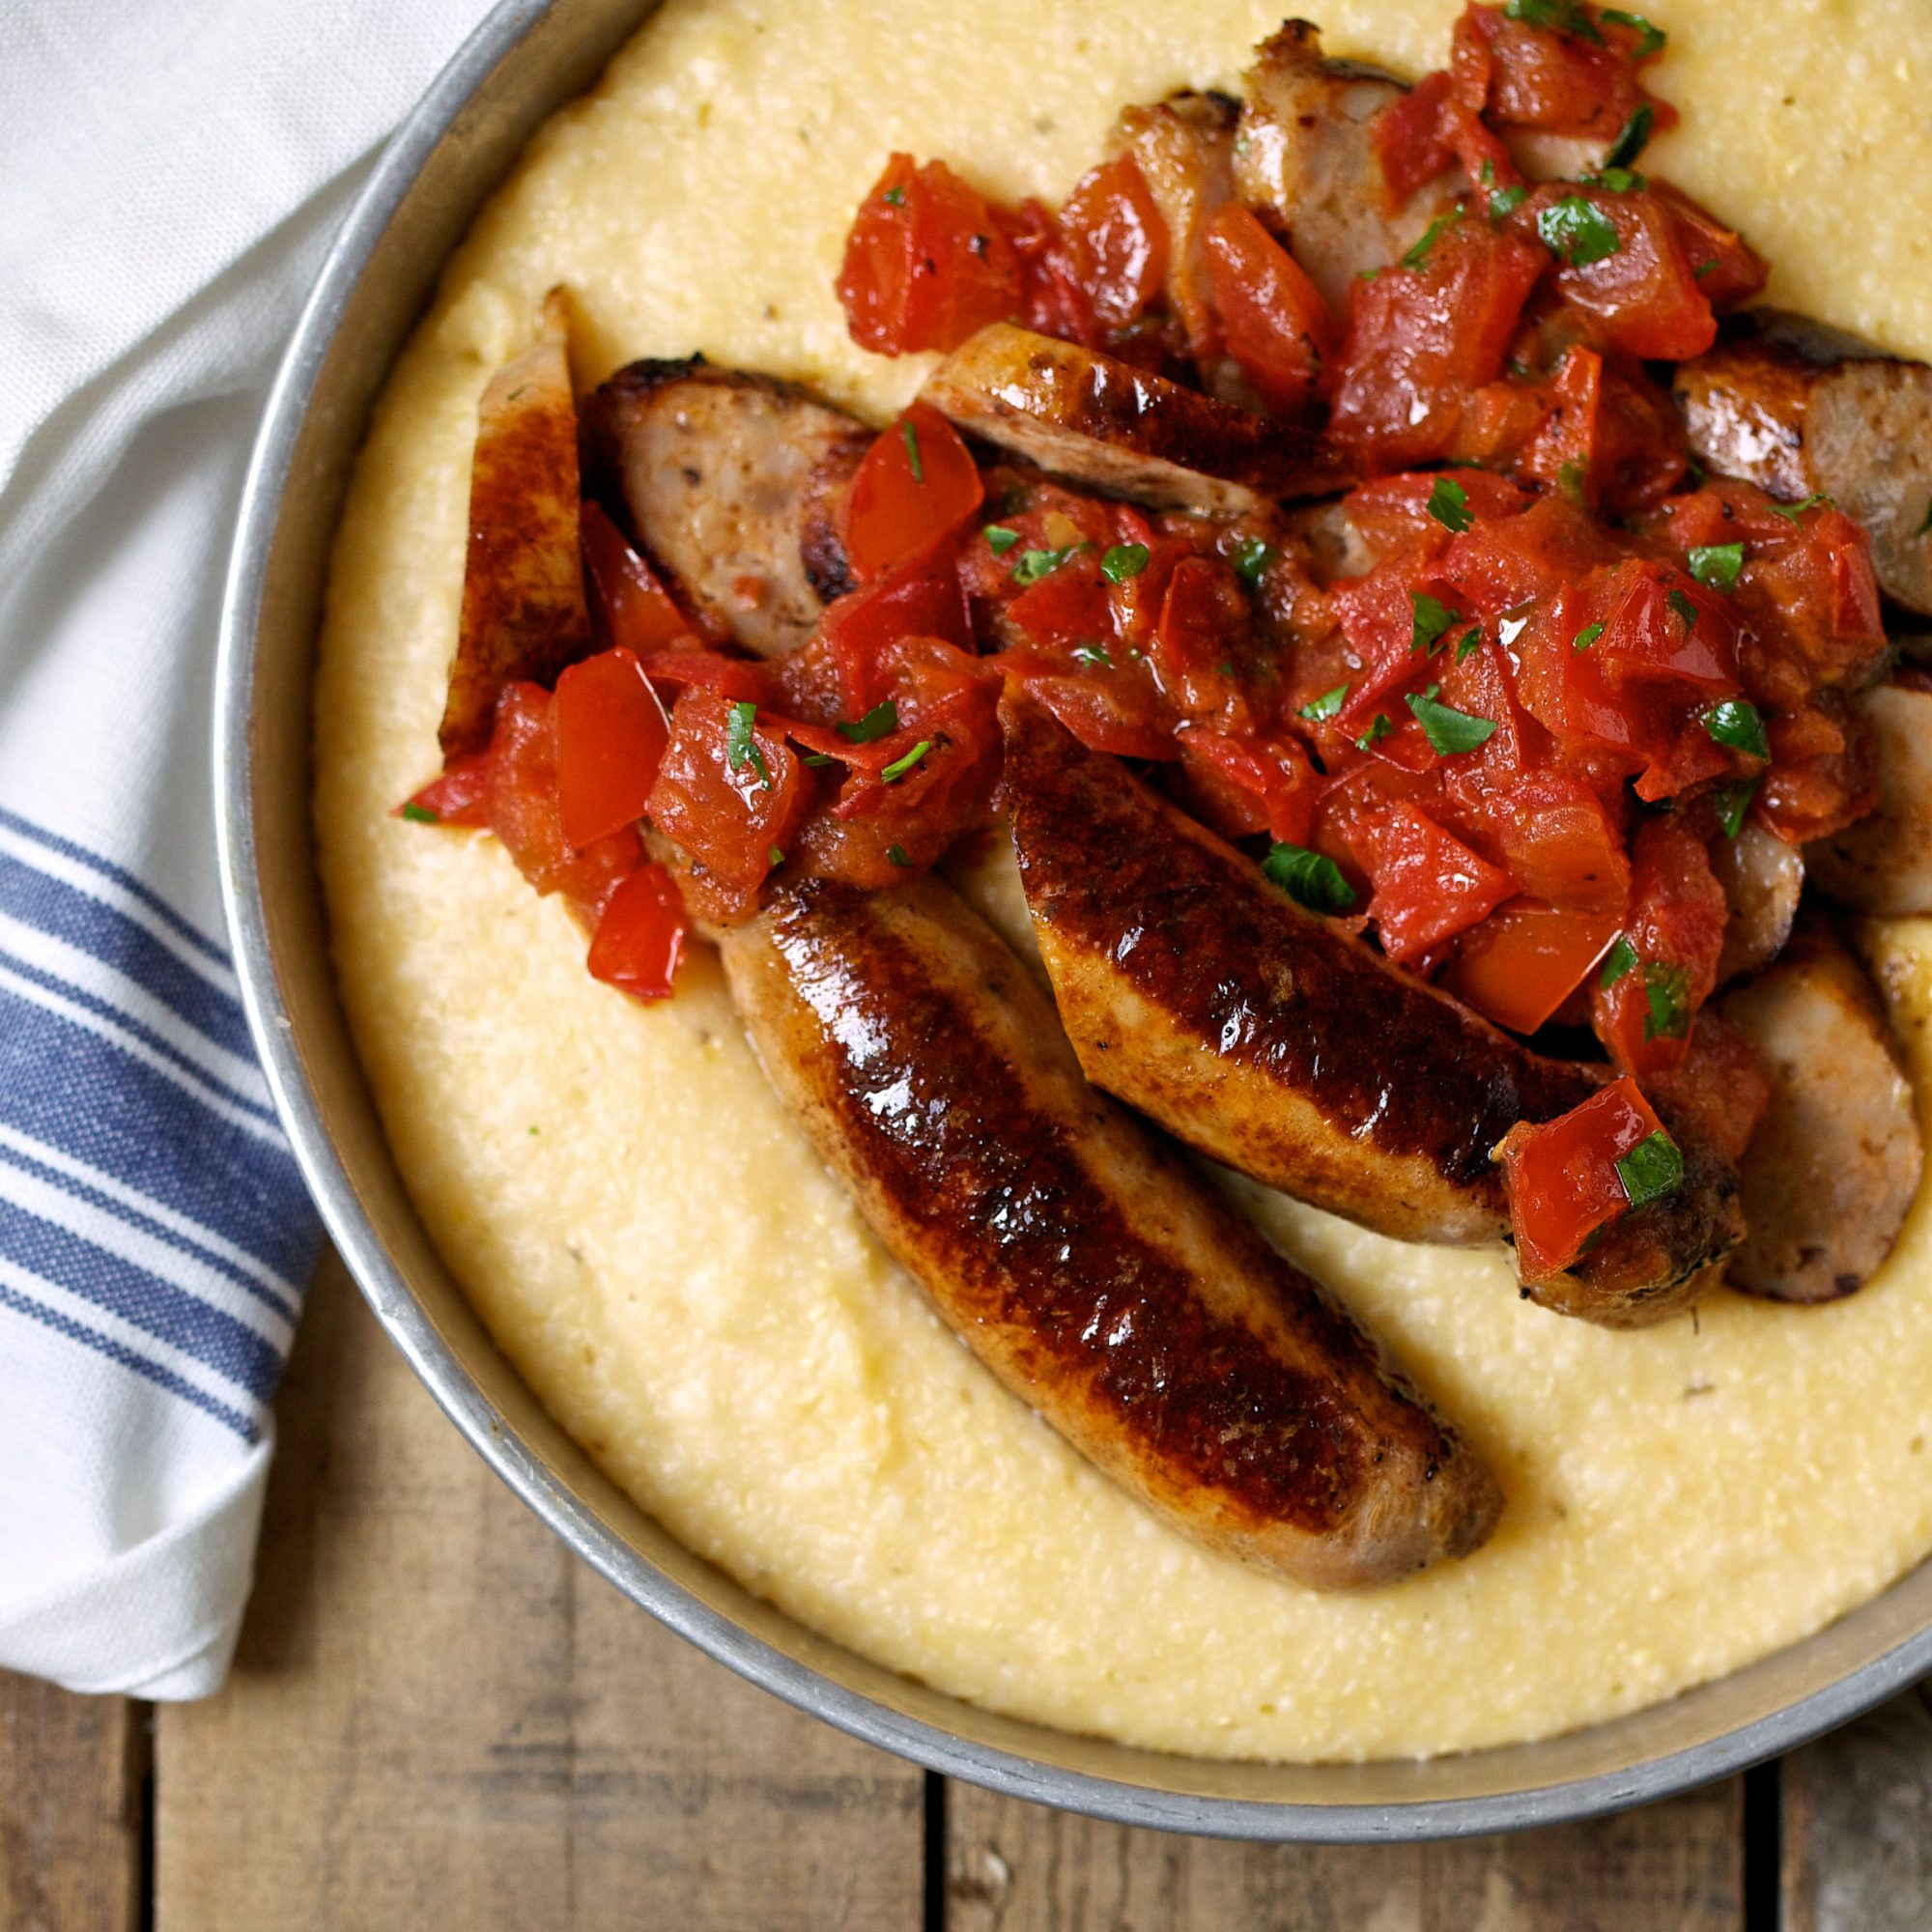 Turkey Sausage with Cheddar-Cheese Grits and Tomato Sauce